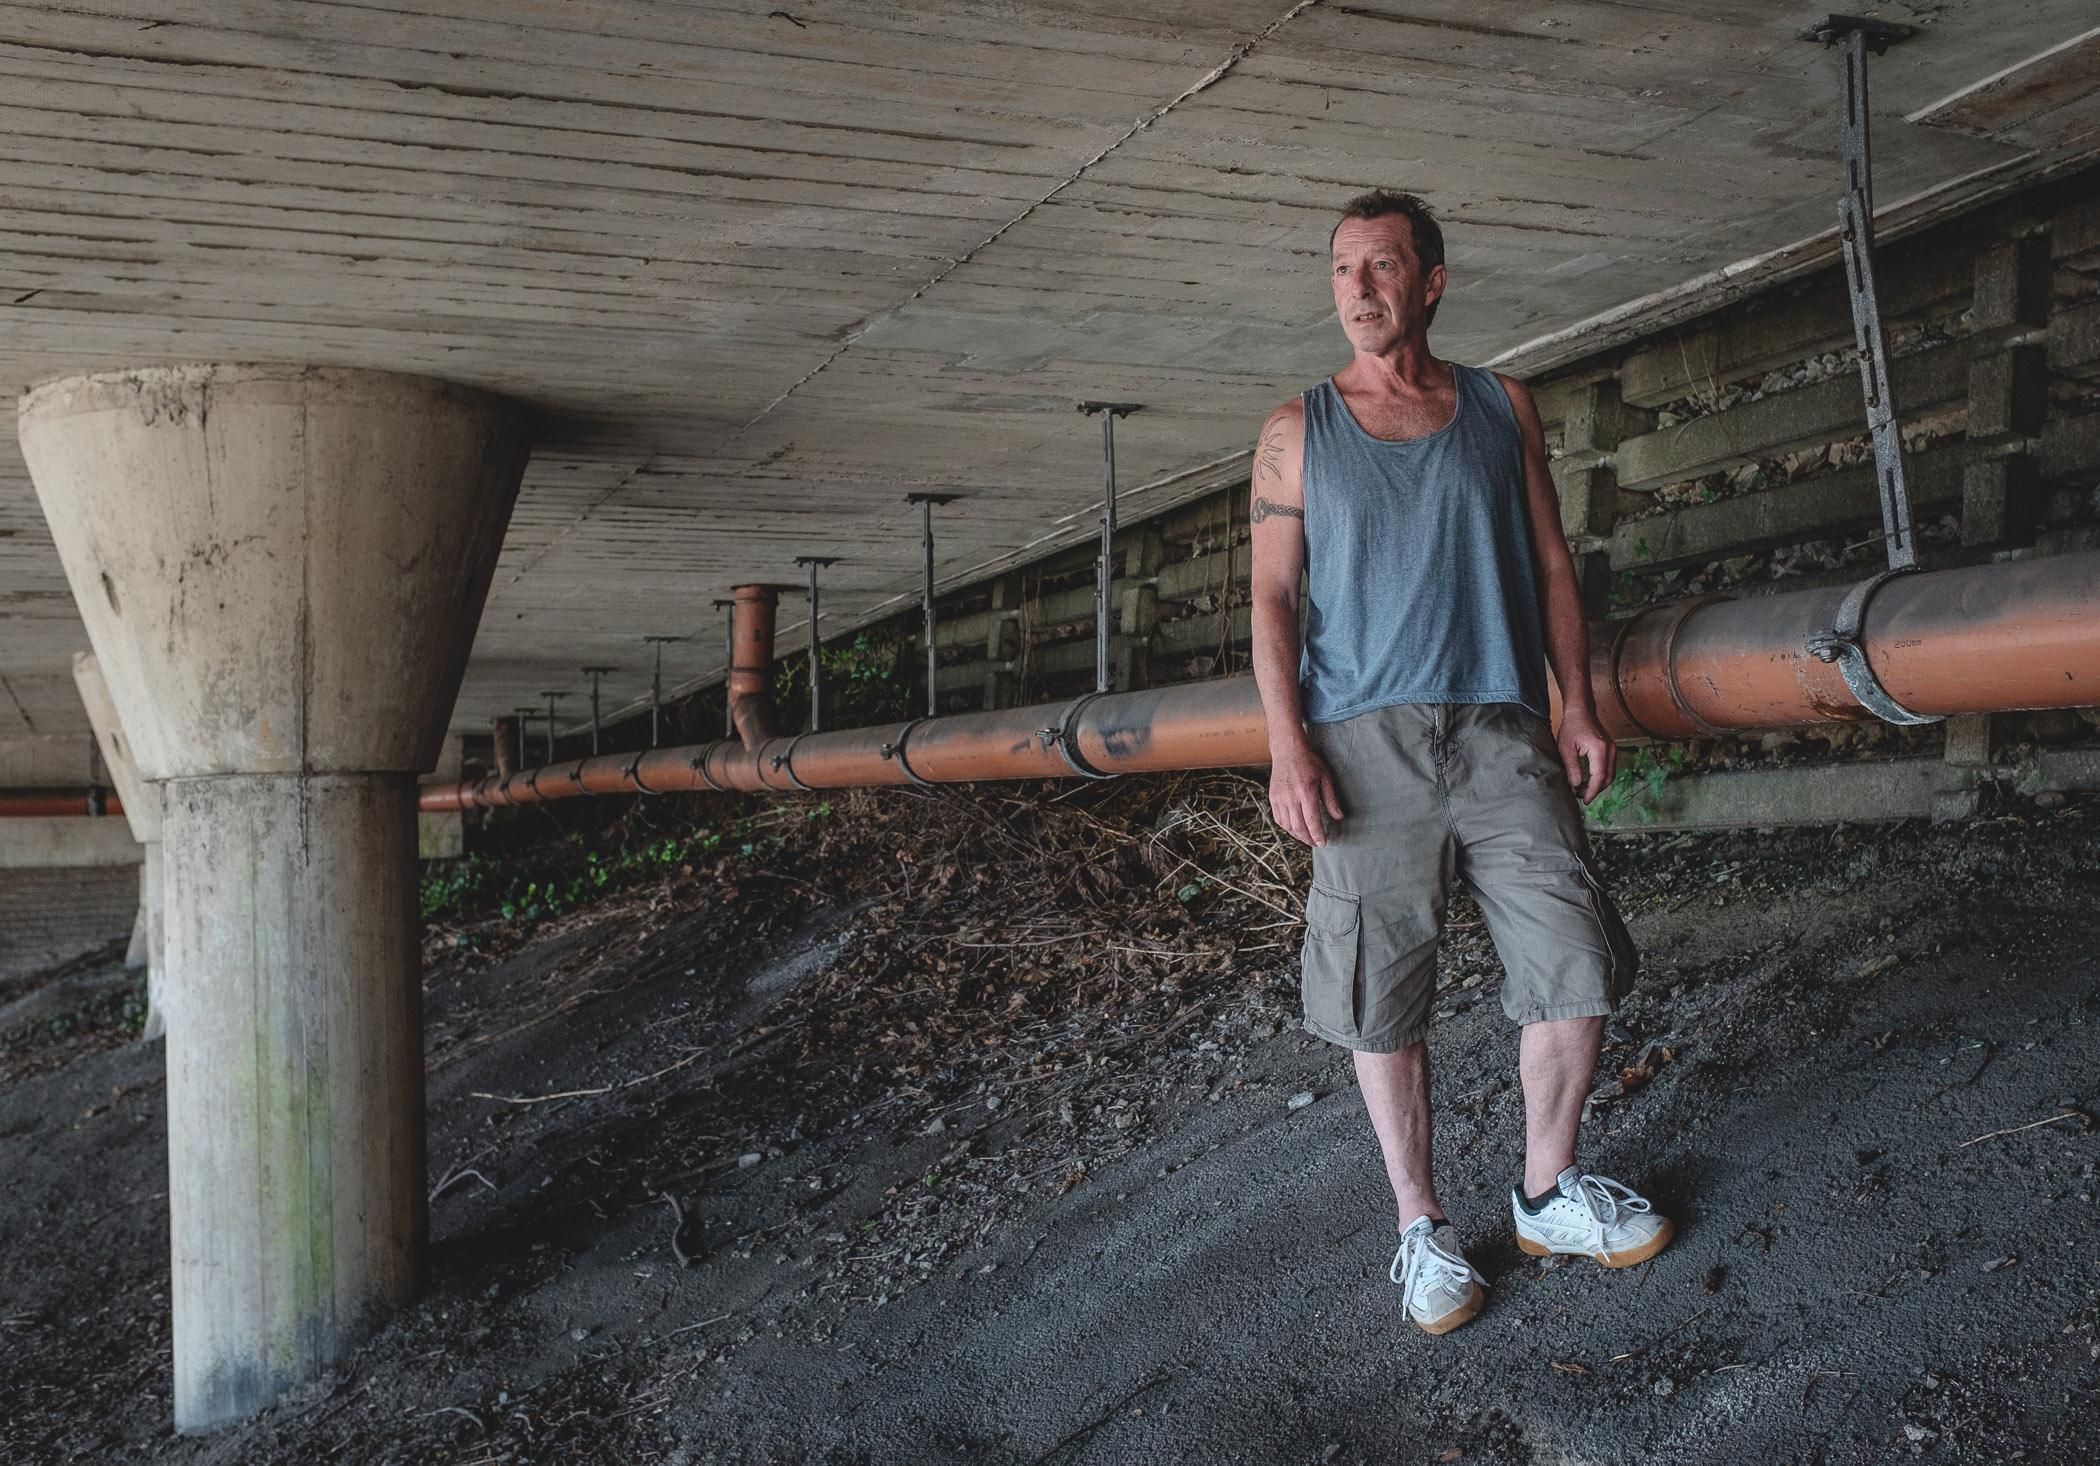 James Clark was part of the skateboard and punk scene in the 1970s, and remembers when the underside of the motorway was a popular hangout and concert venue for other punks.